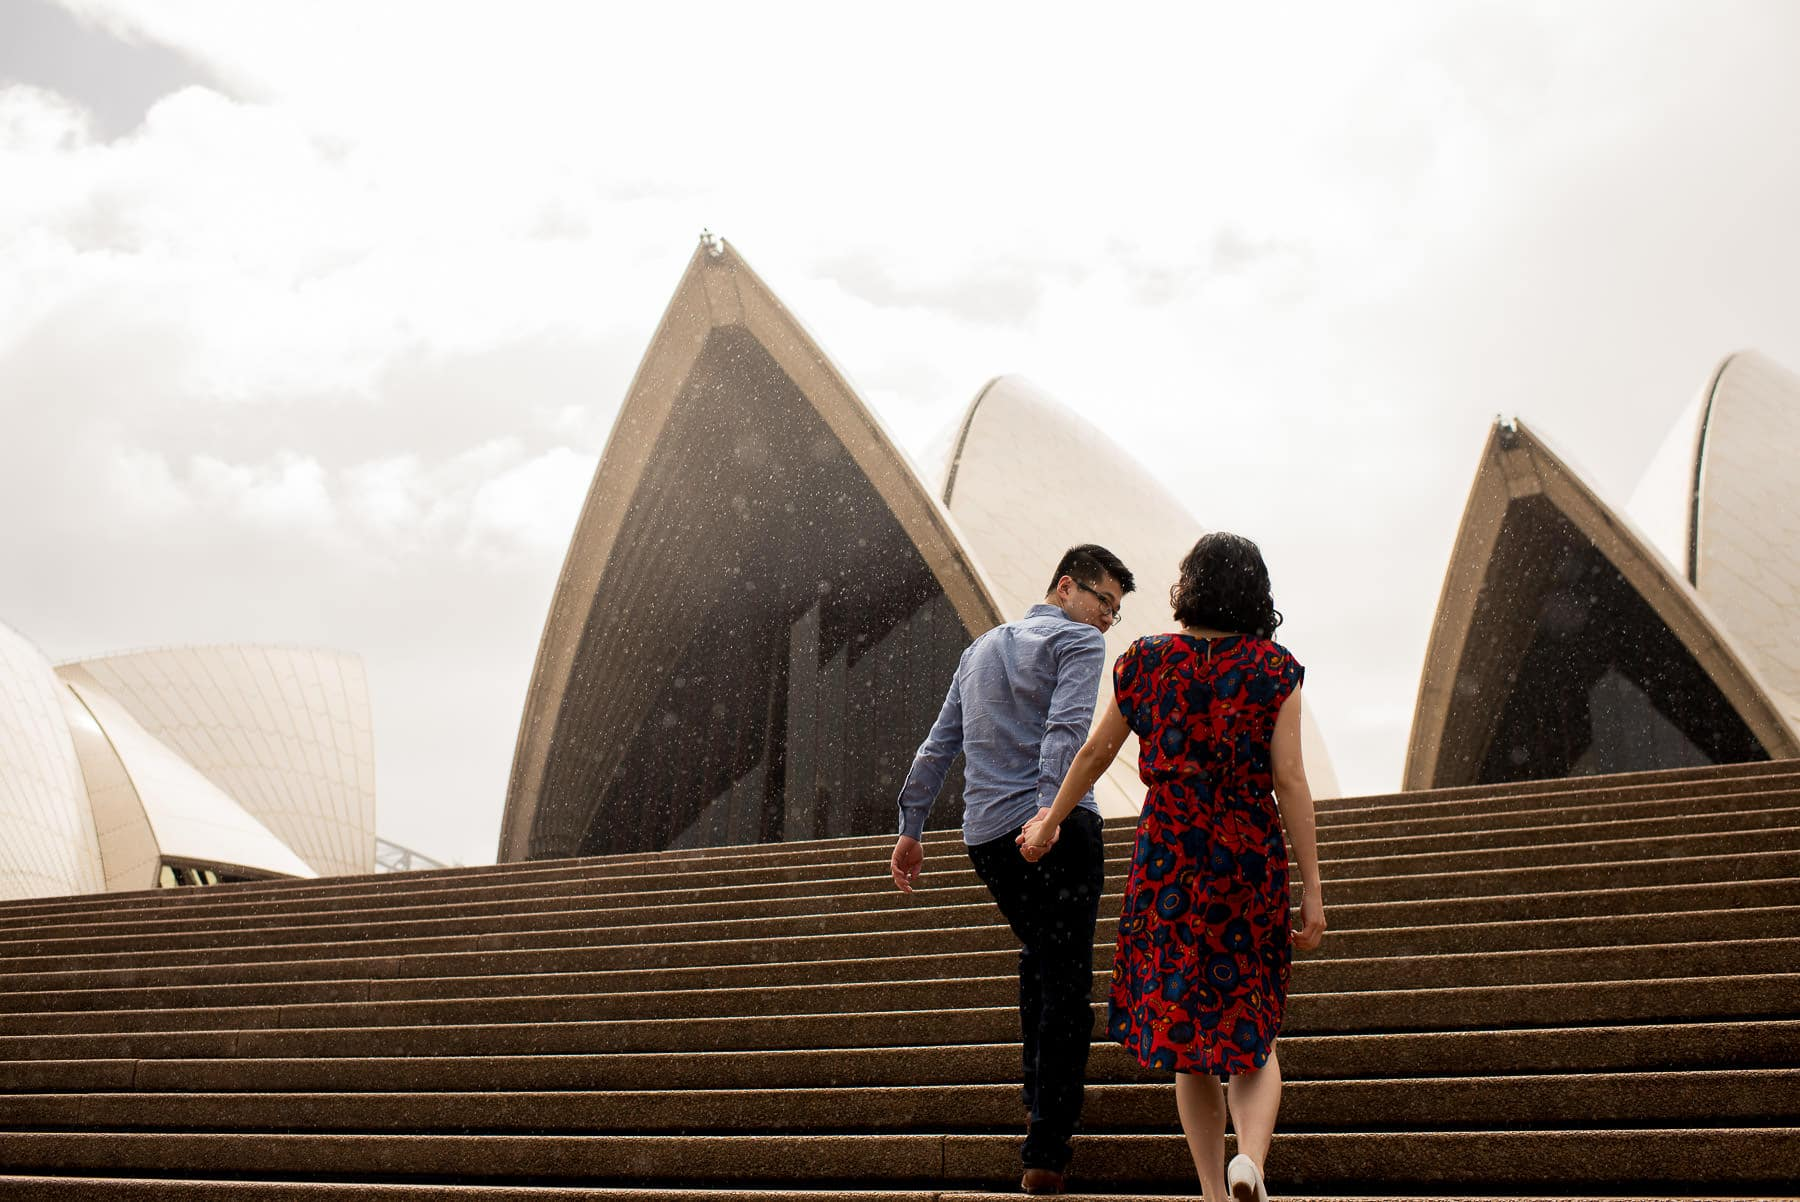 guy leads girl up steps at Opera House during engagement photography session on a rainy day